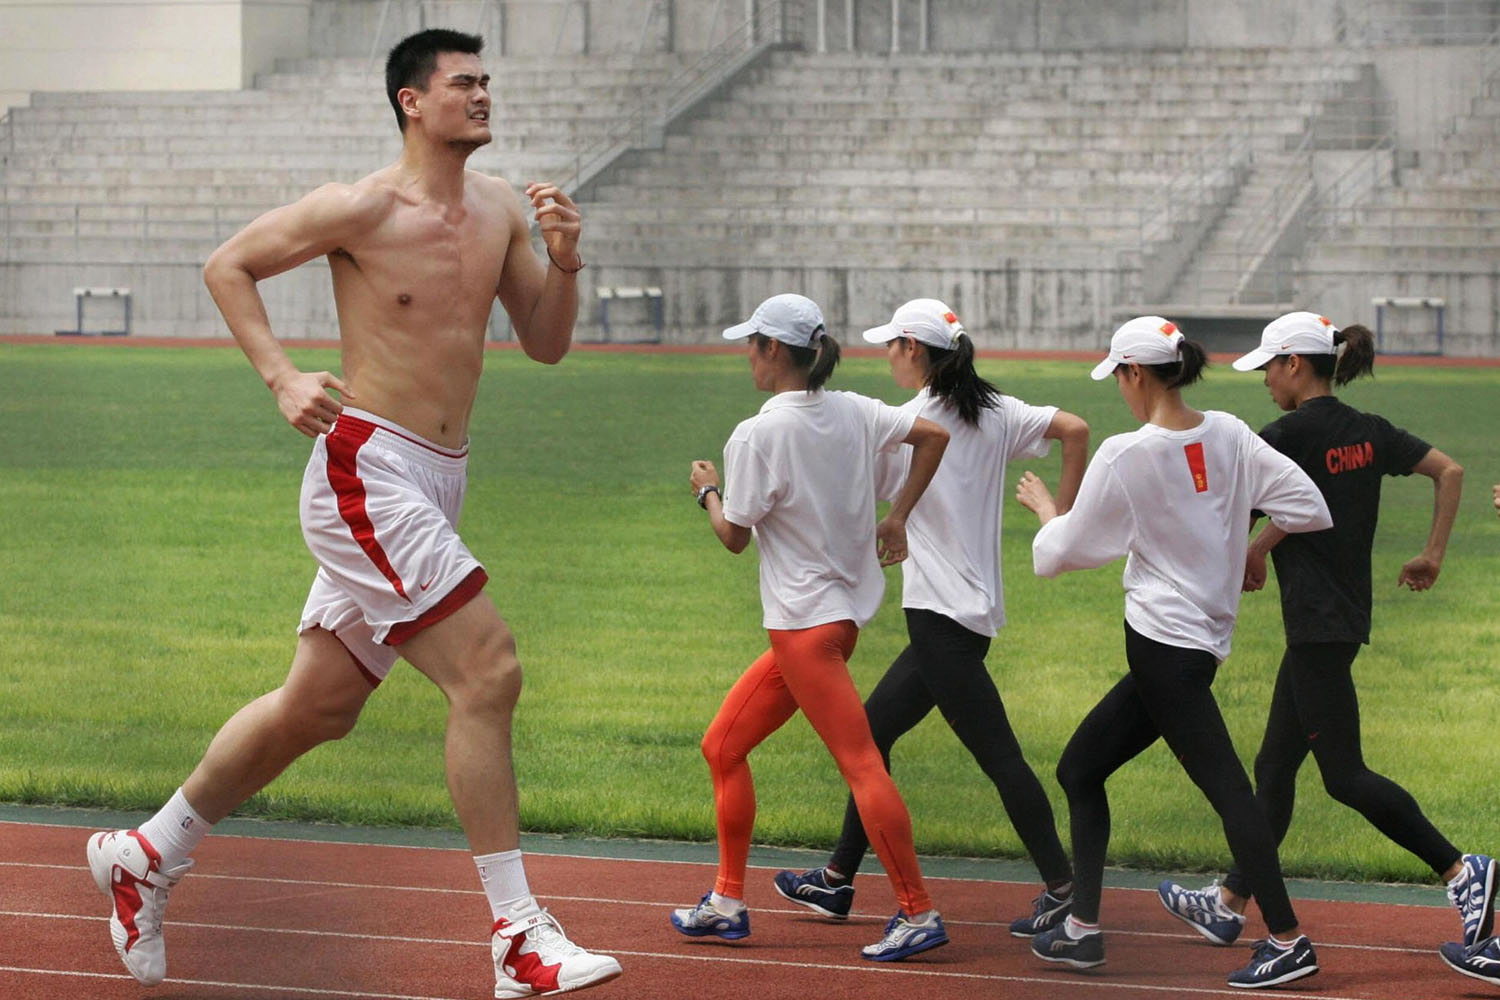 Yao Ming runs around a track during a training session in Beijing for the upcoming World Basketball Championships which begin in Japan in 2006.